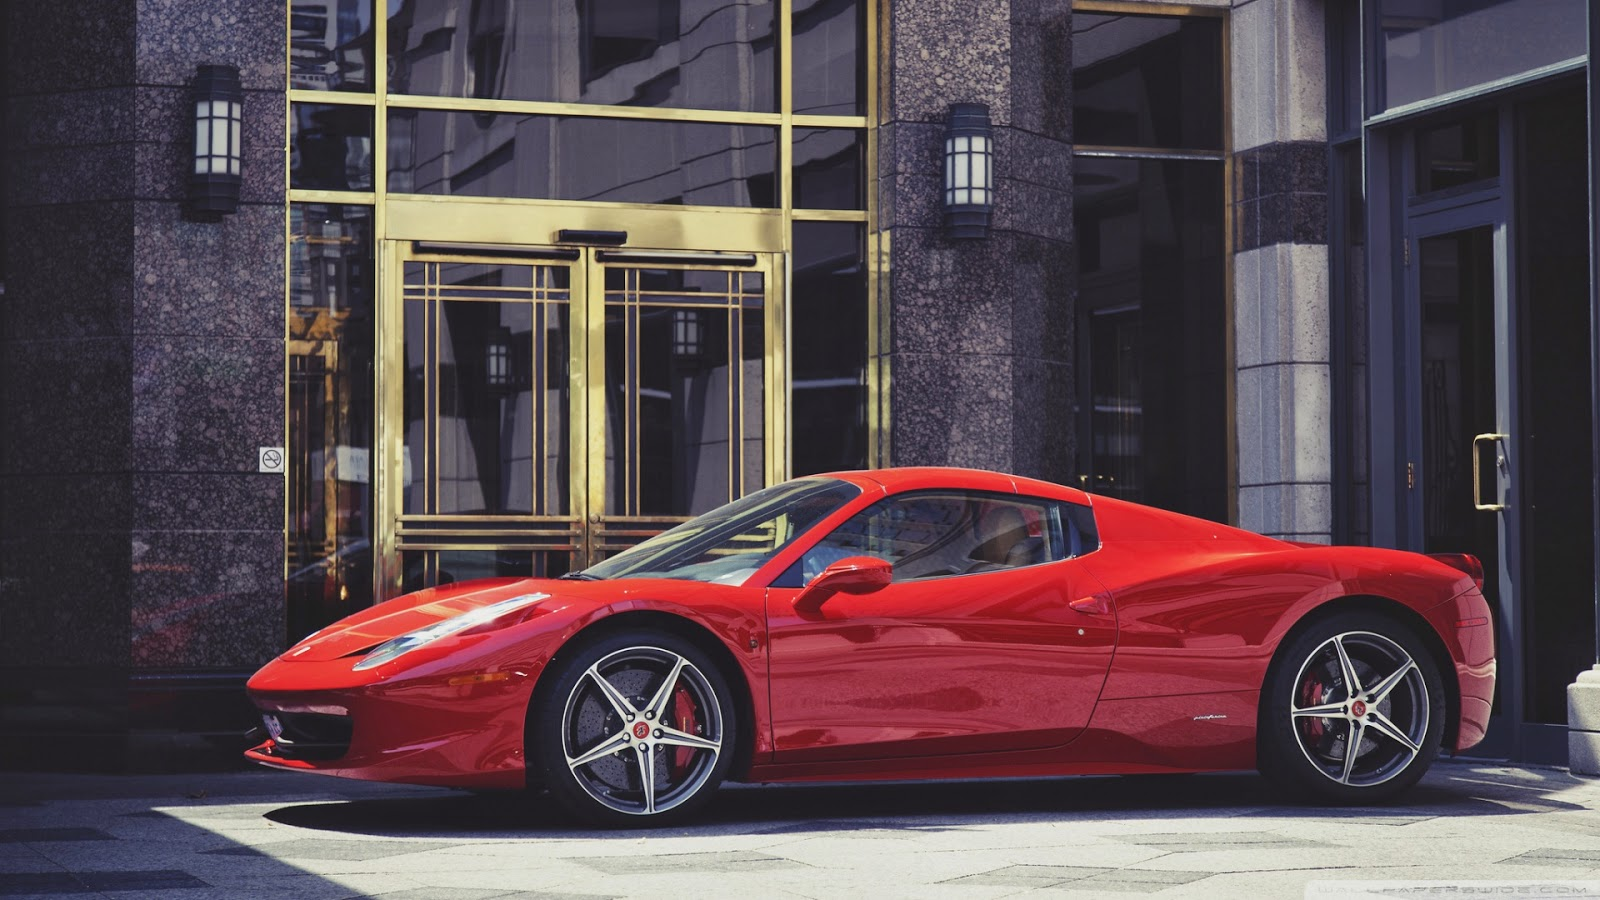 Ferrari Wallpapers Car Vehicle